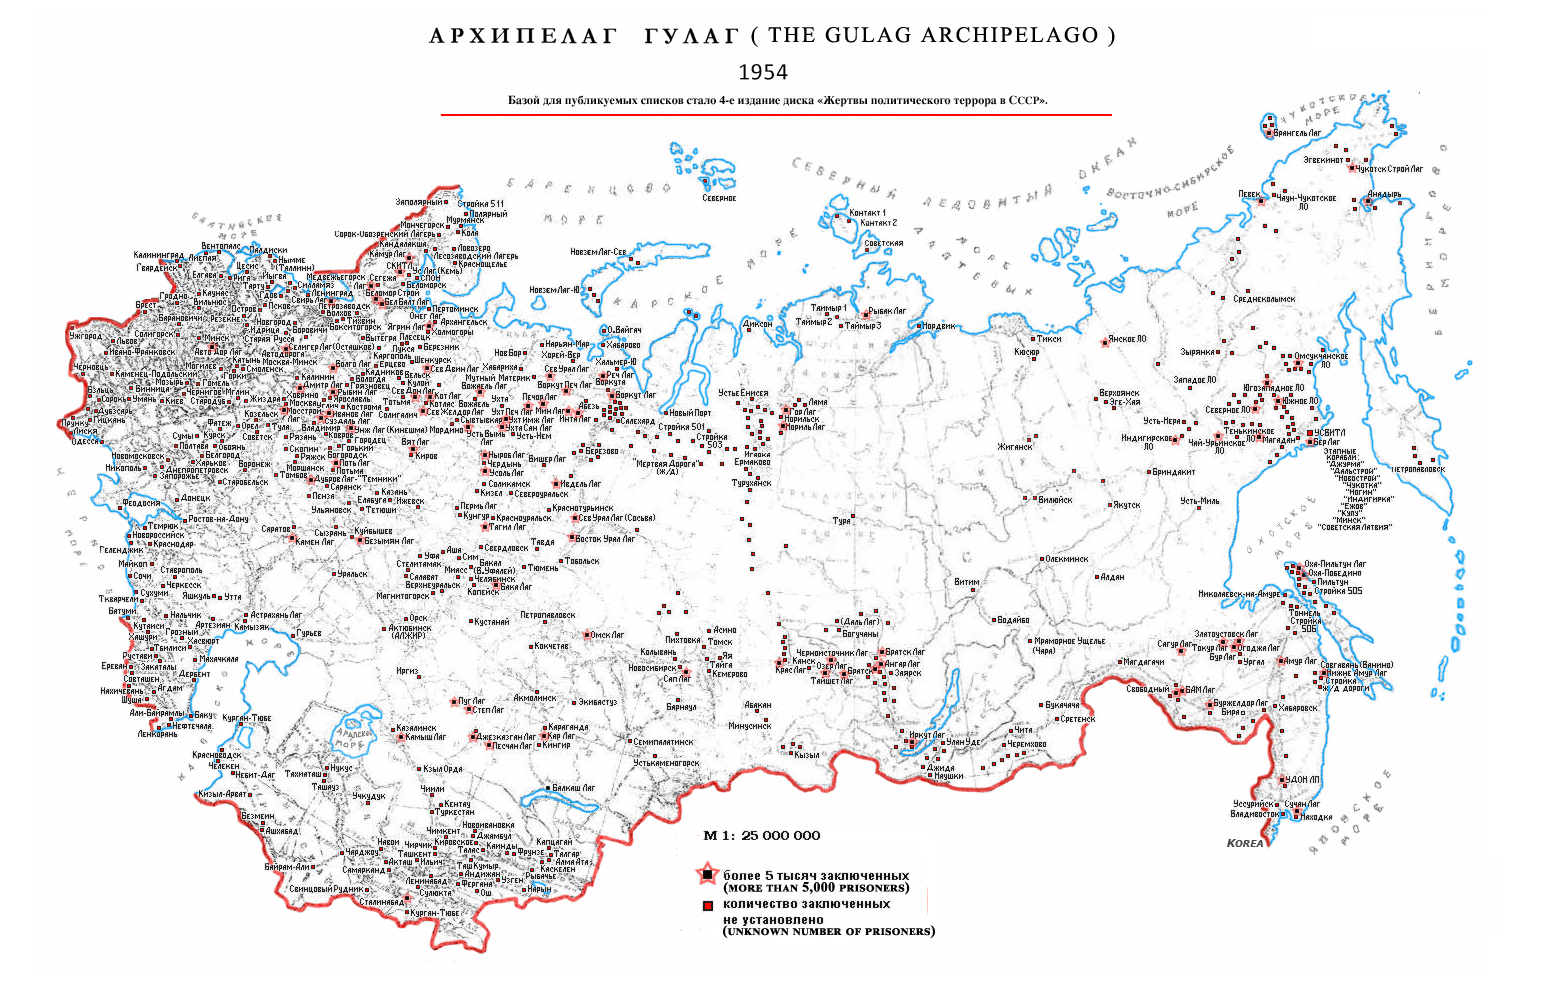 The Gulag Archipelago (The Soviet forced labor camp system)